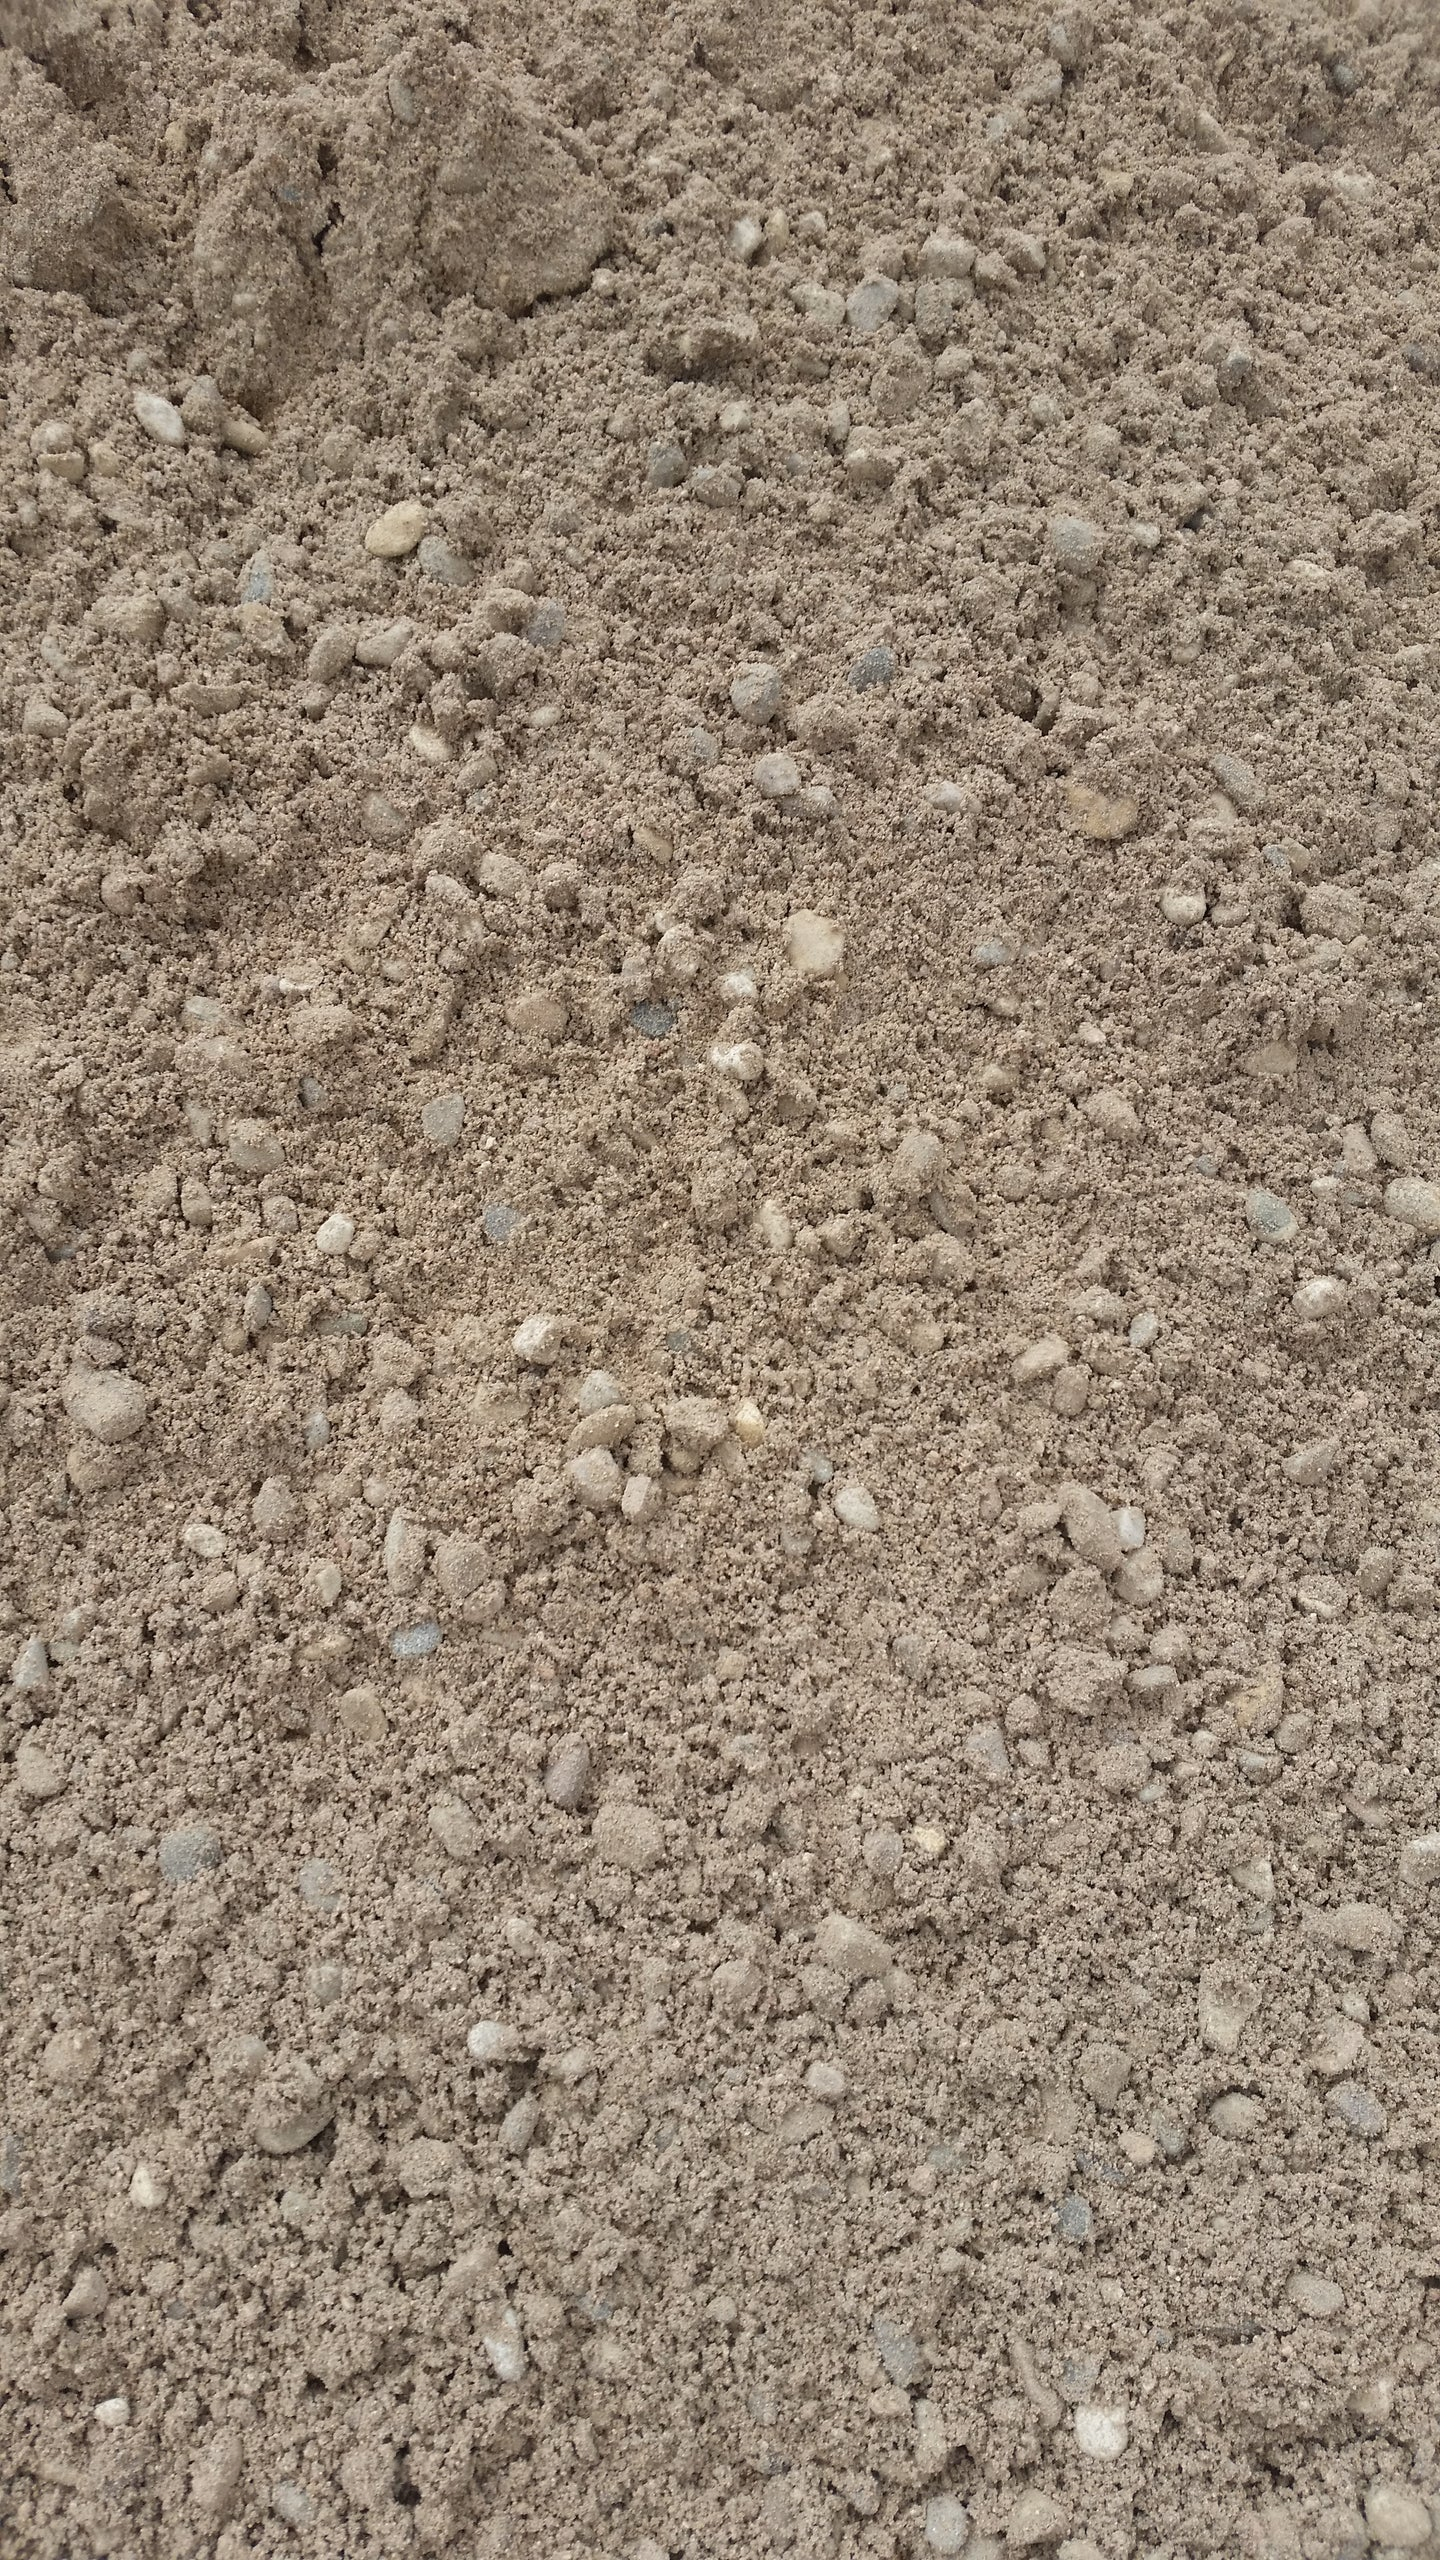 CONCRETE ROCK/SAND MIX